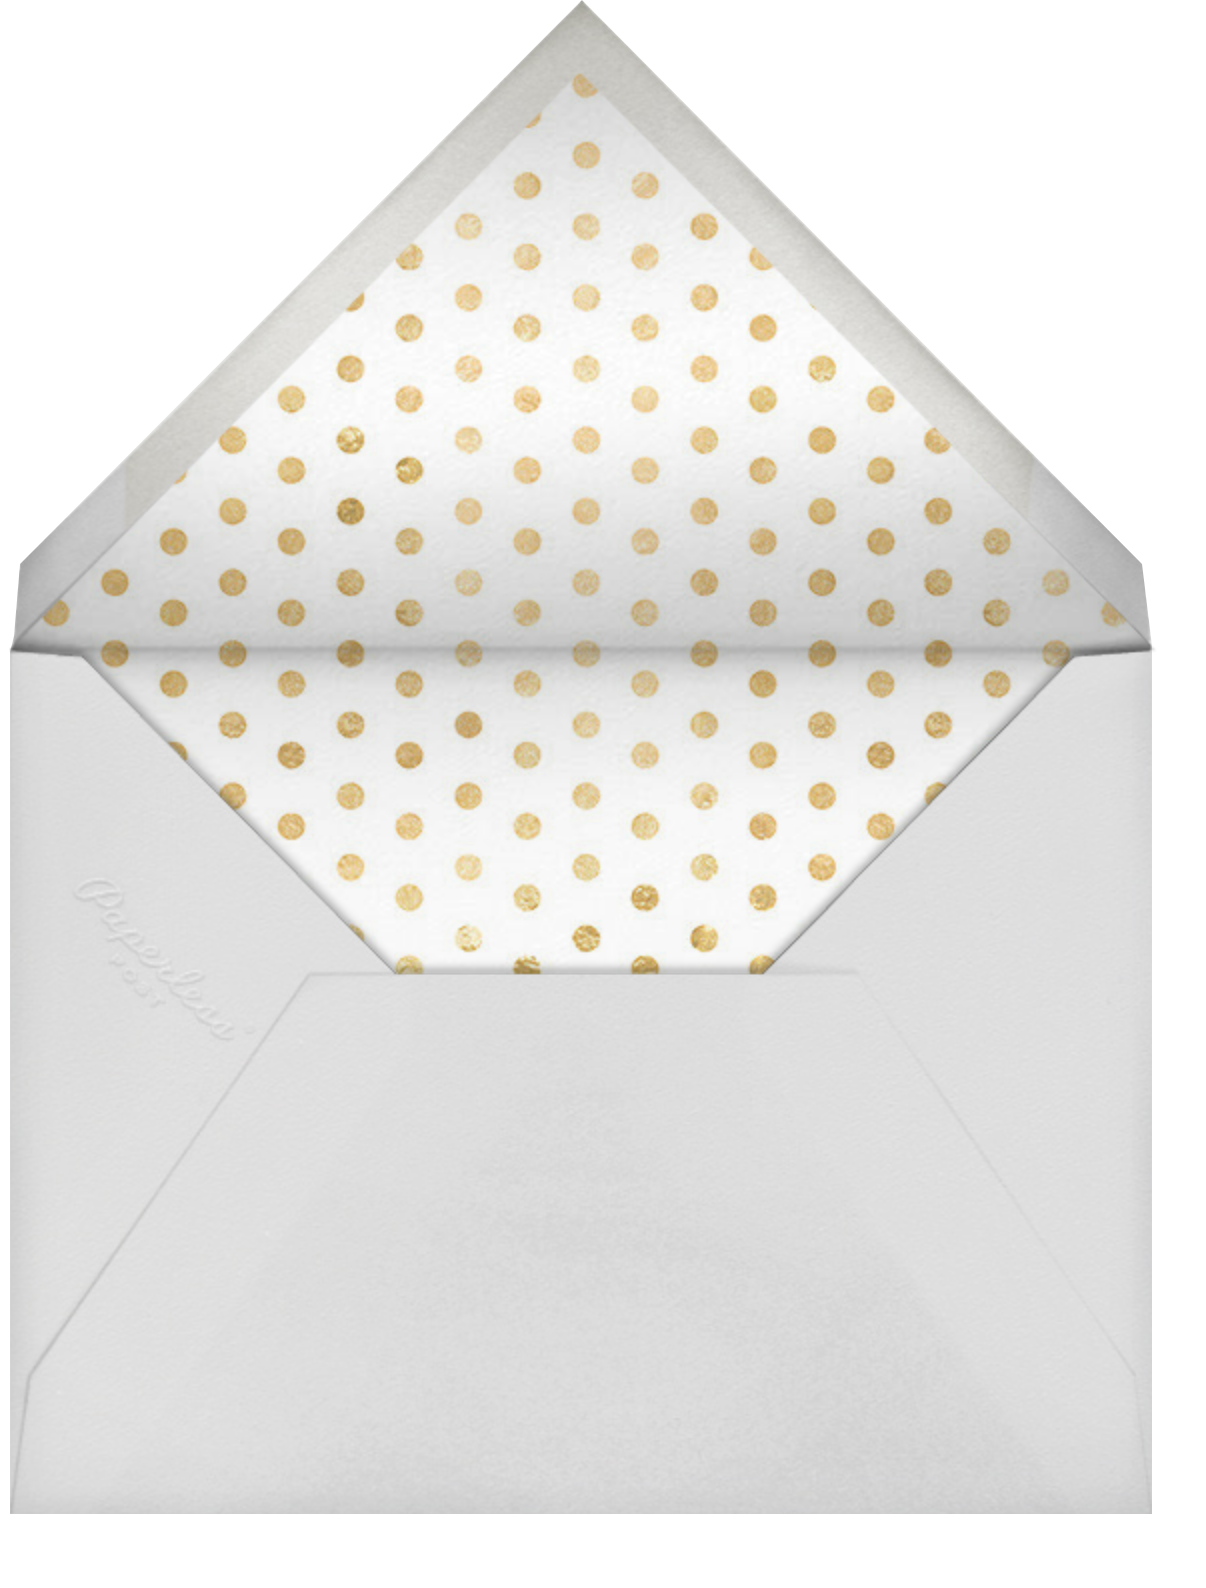 Princess Cake - Rifle Paper Co. - Wedding party requests - envelope back